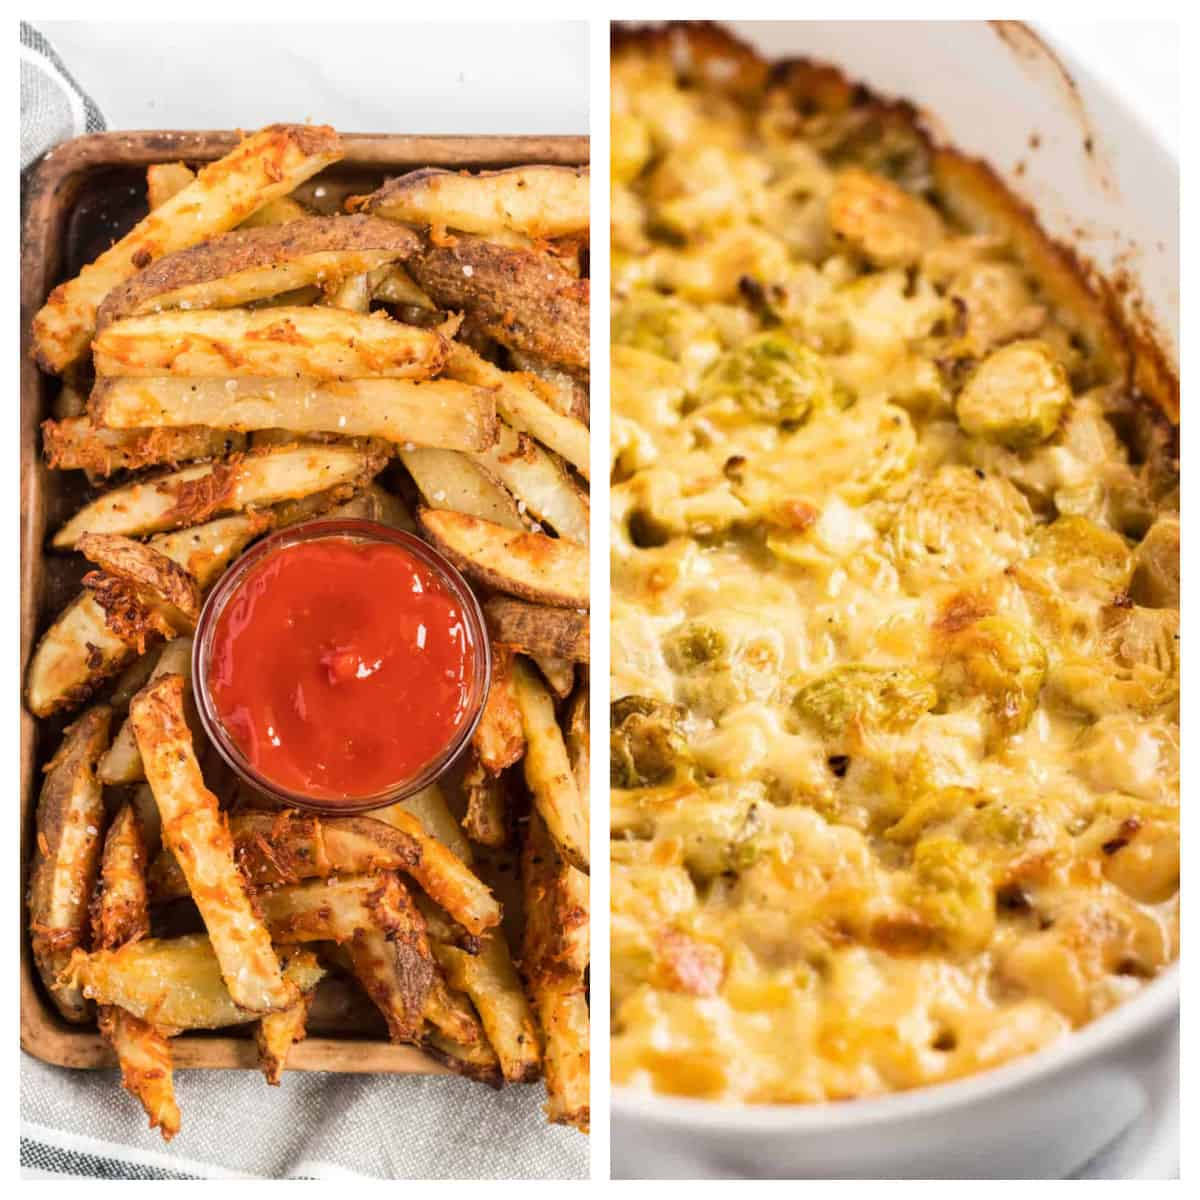 collage image with potato wedges and brussel sprouts gratin